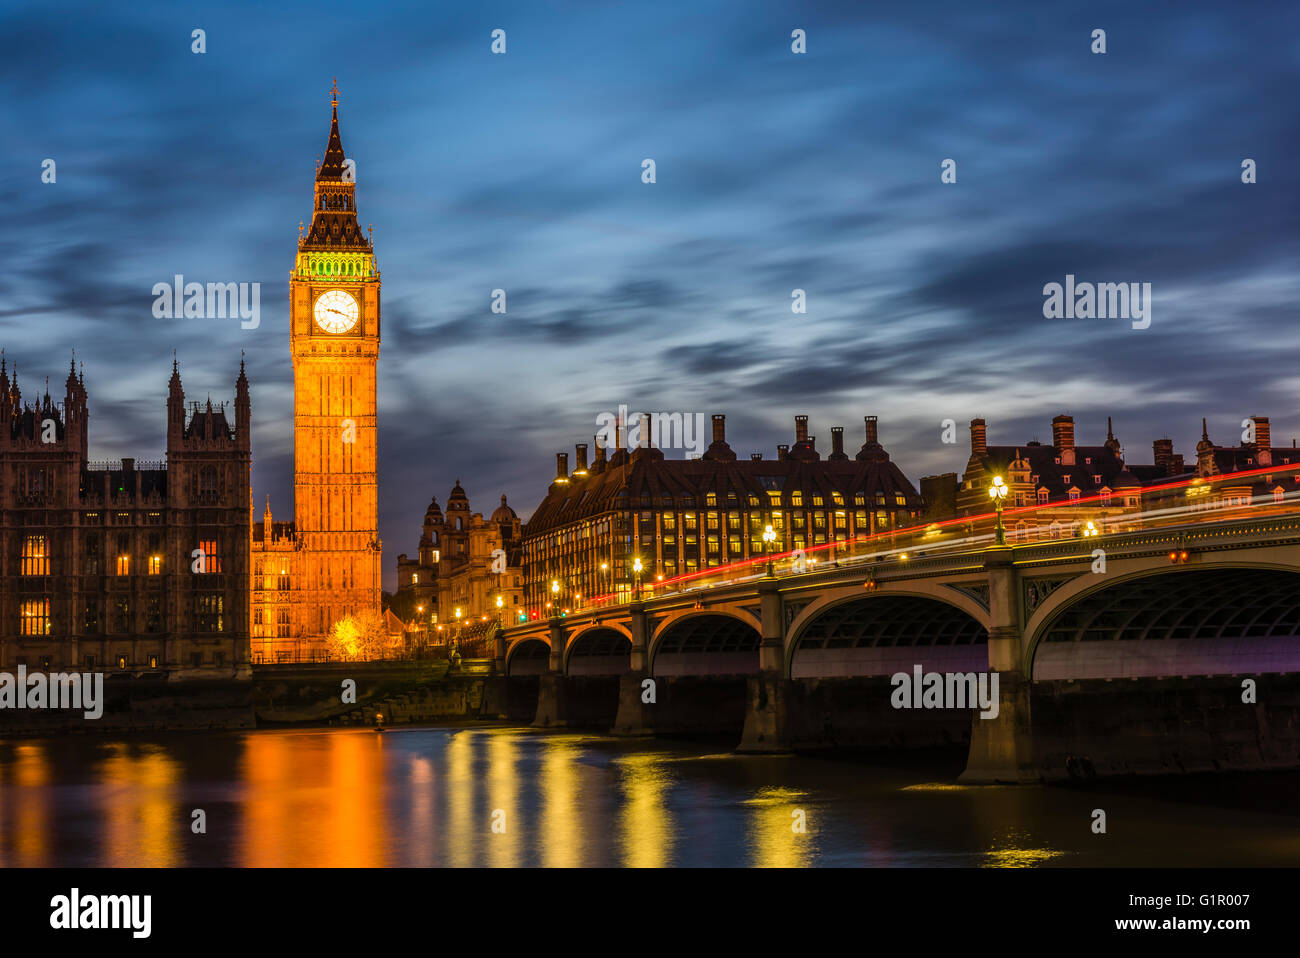 Stunning lights around Westminster Bridge and Big Ben at dusk, London, UK. - Stock Image